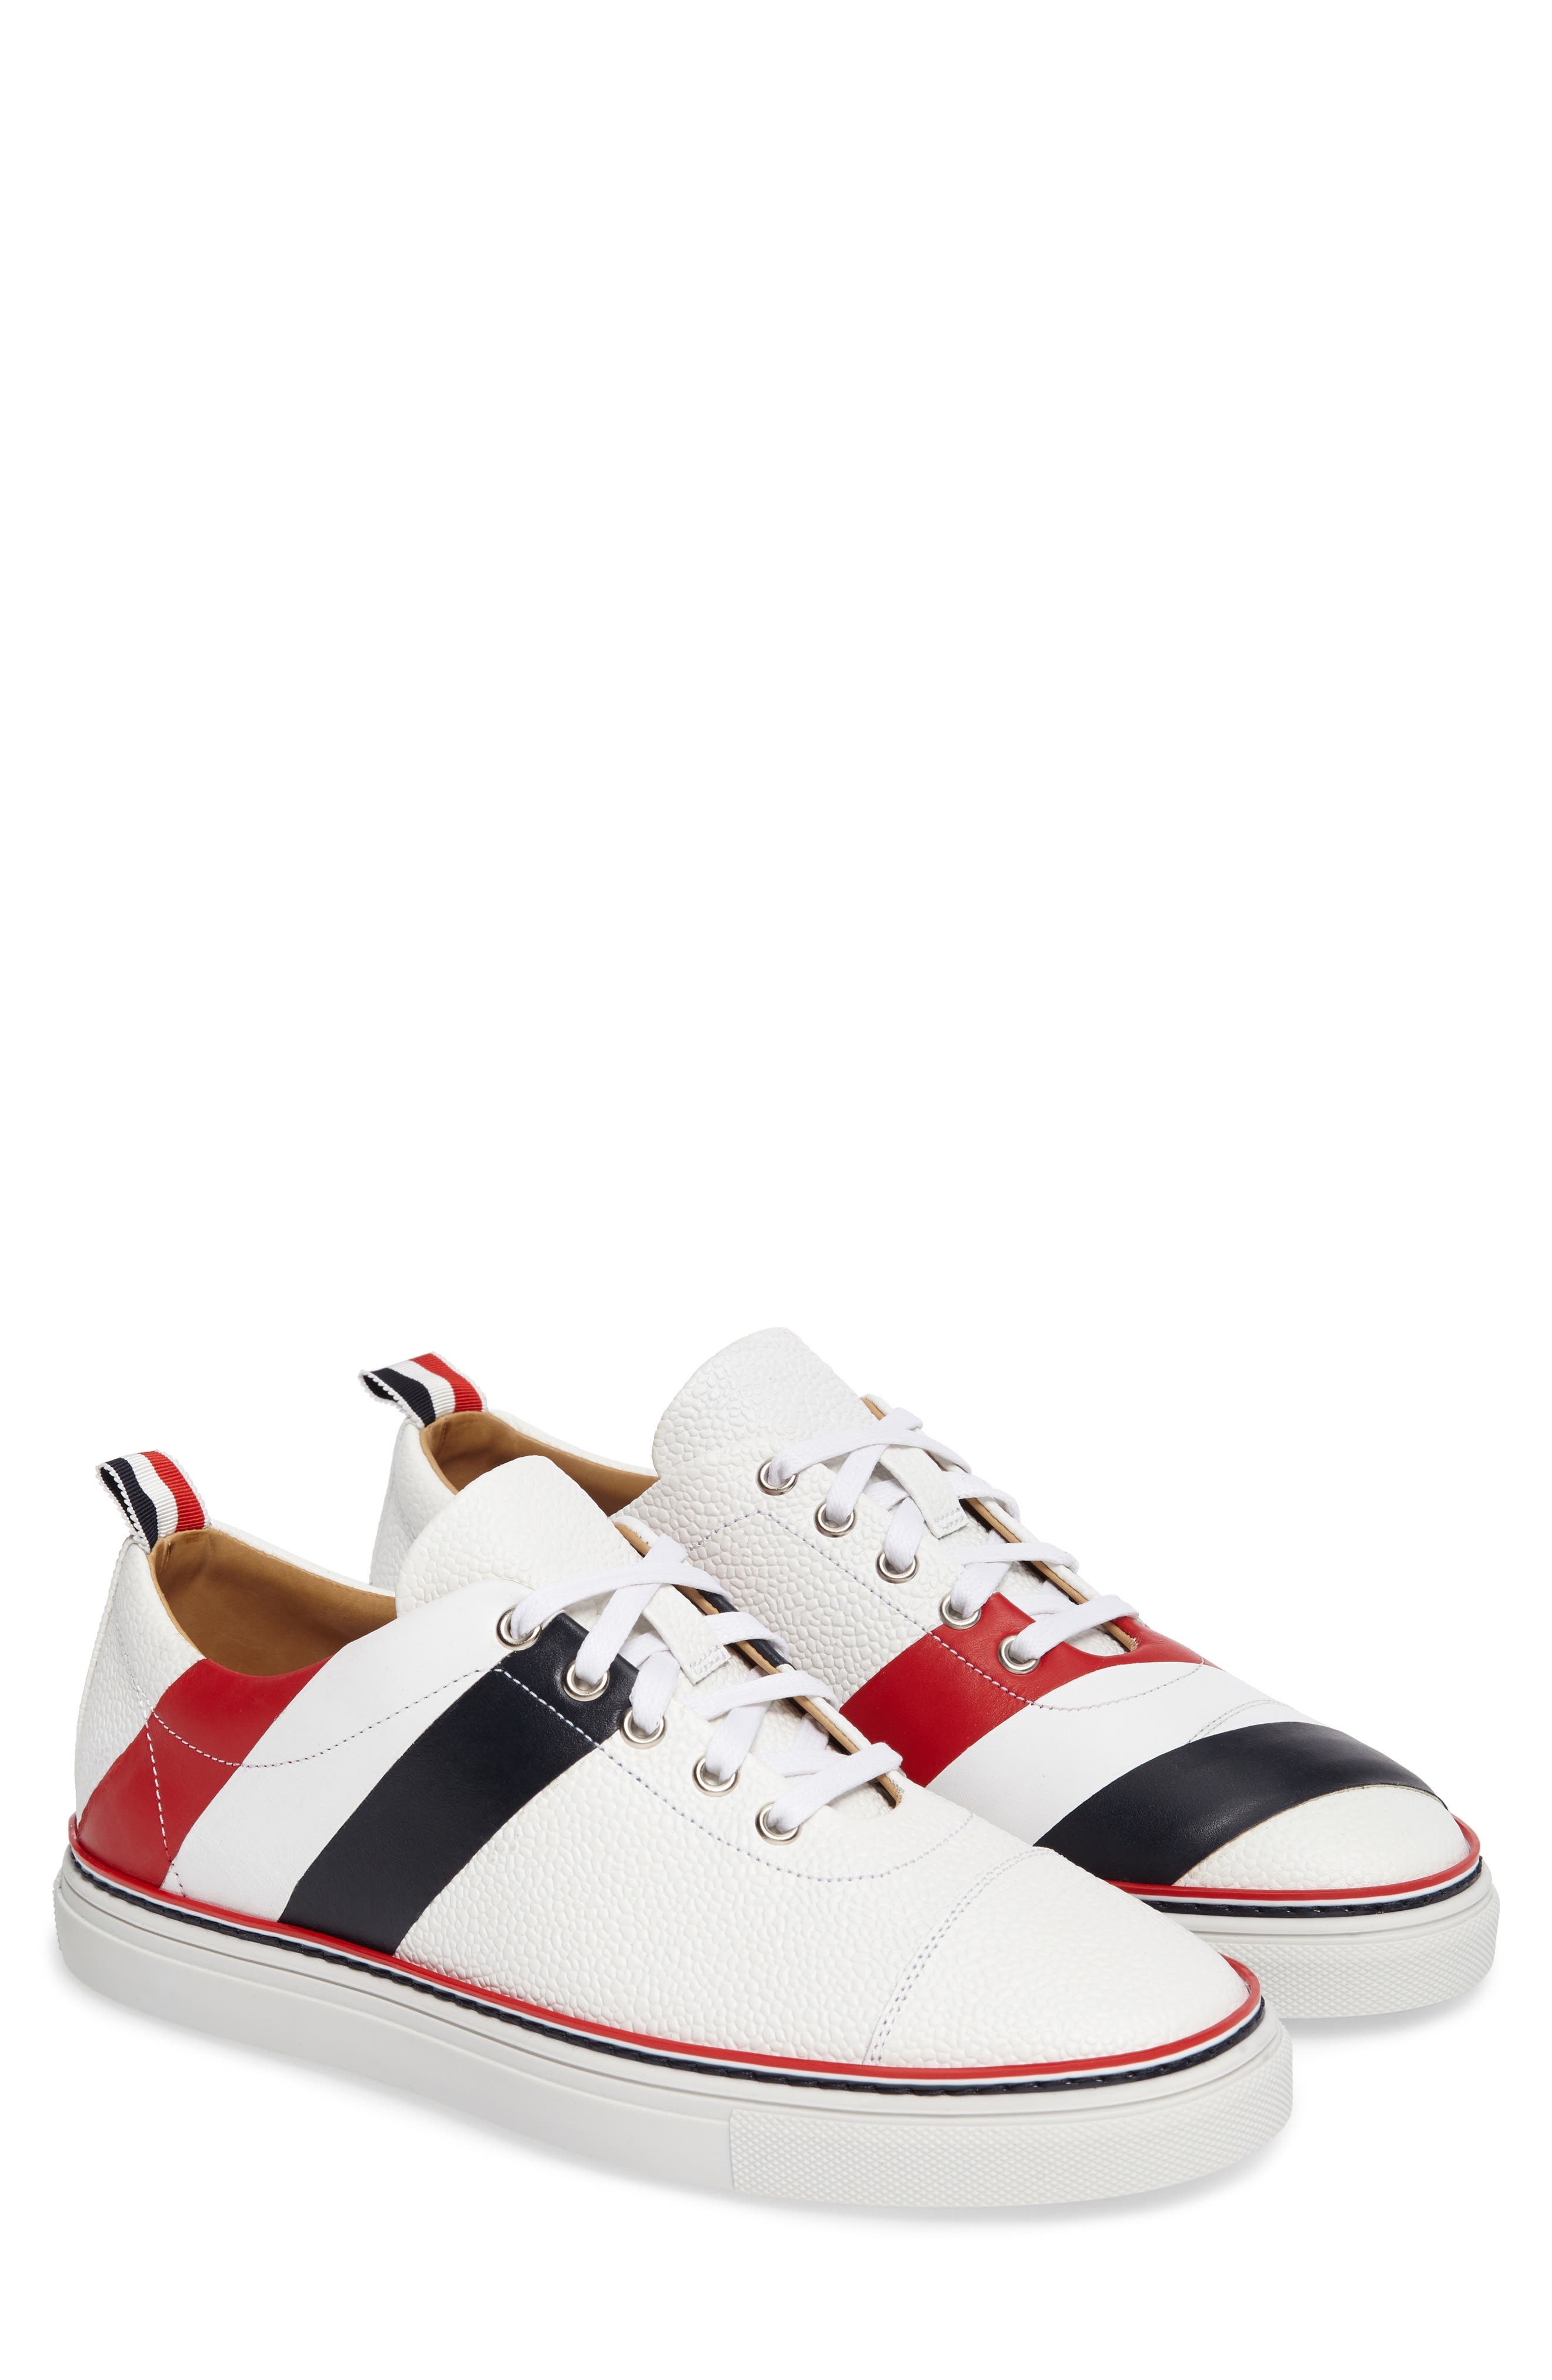 Thom Browne Asymmetrical Stripe Sneaker (Men's)